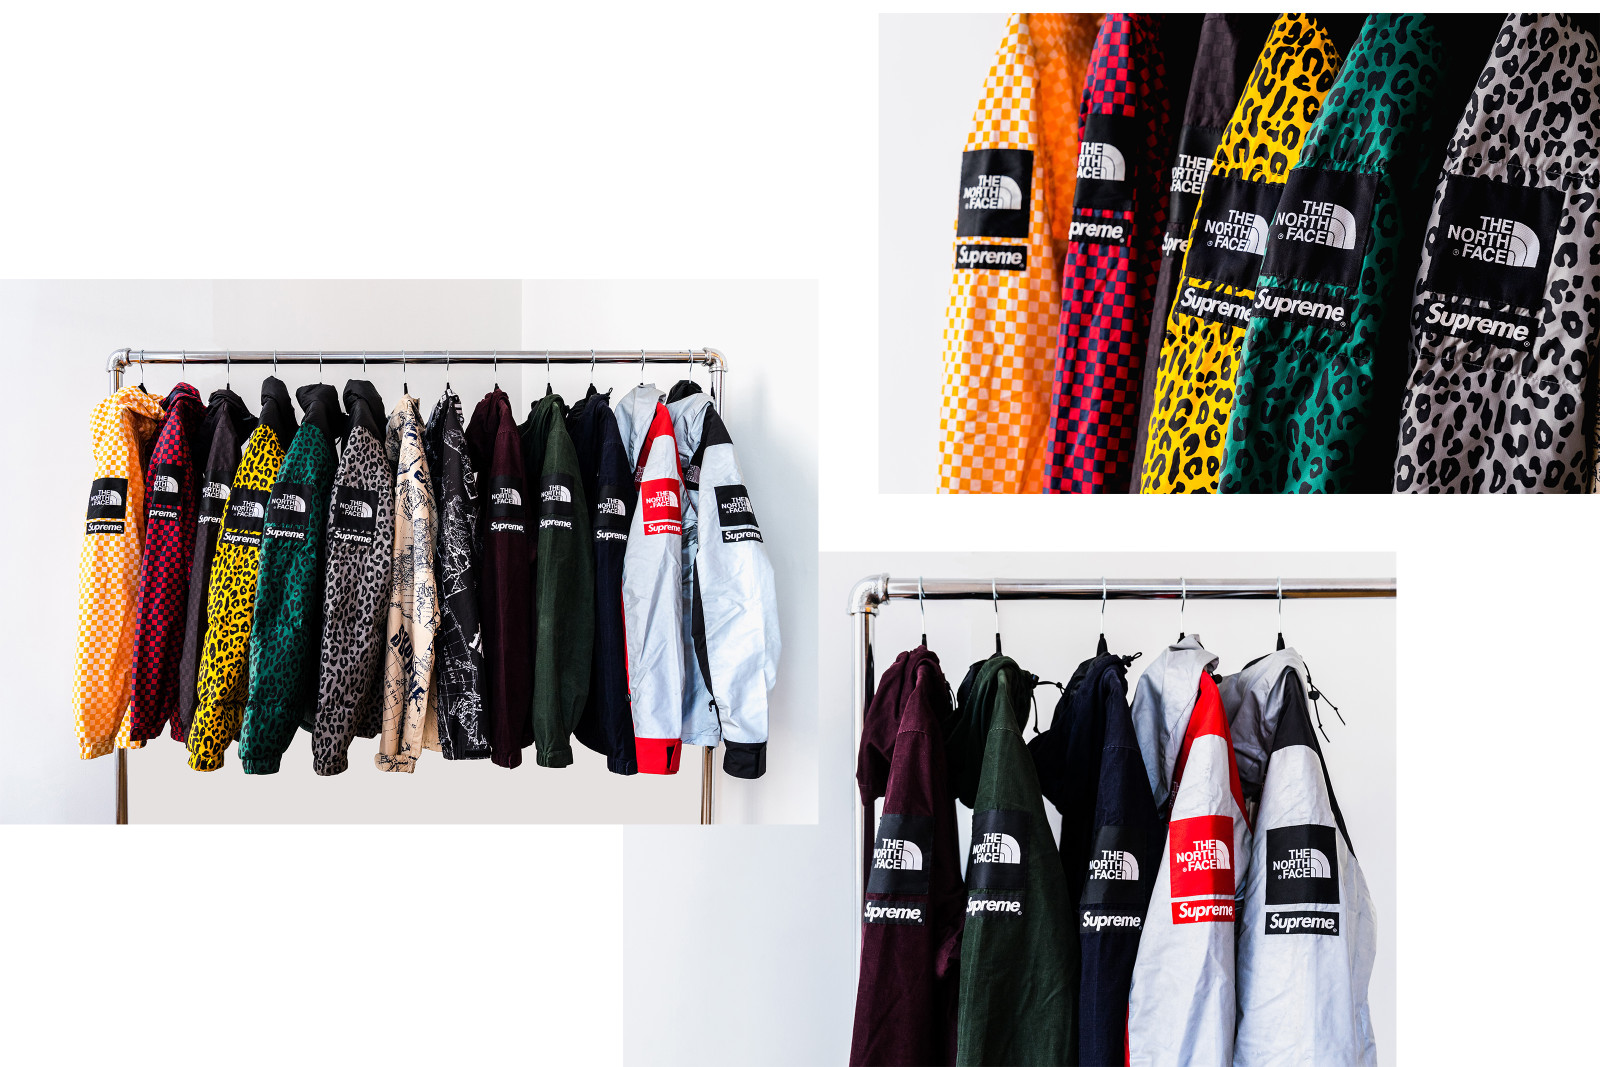 Peter Valles The North Face TNF Supreme Vans Comme des Garcons CDG sacai Collaborations Collabs Jackets Pants Outerwear Junya Watanabe mastermind Vans